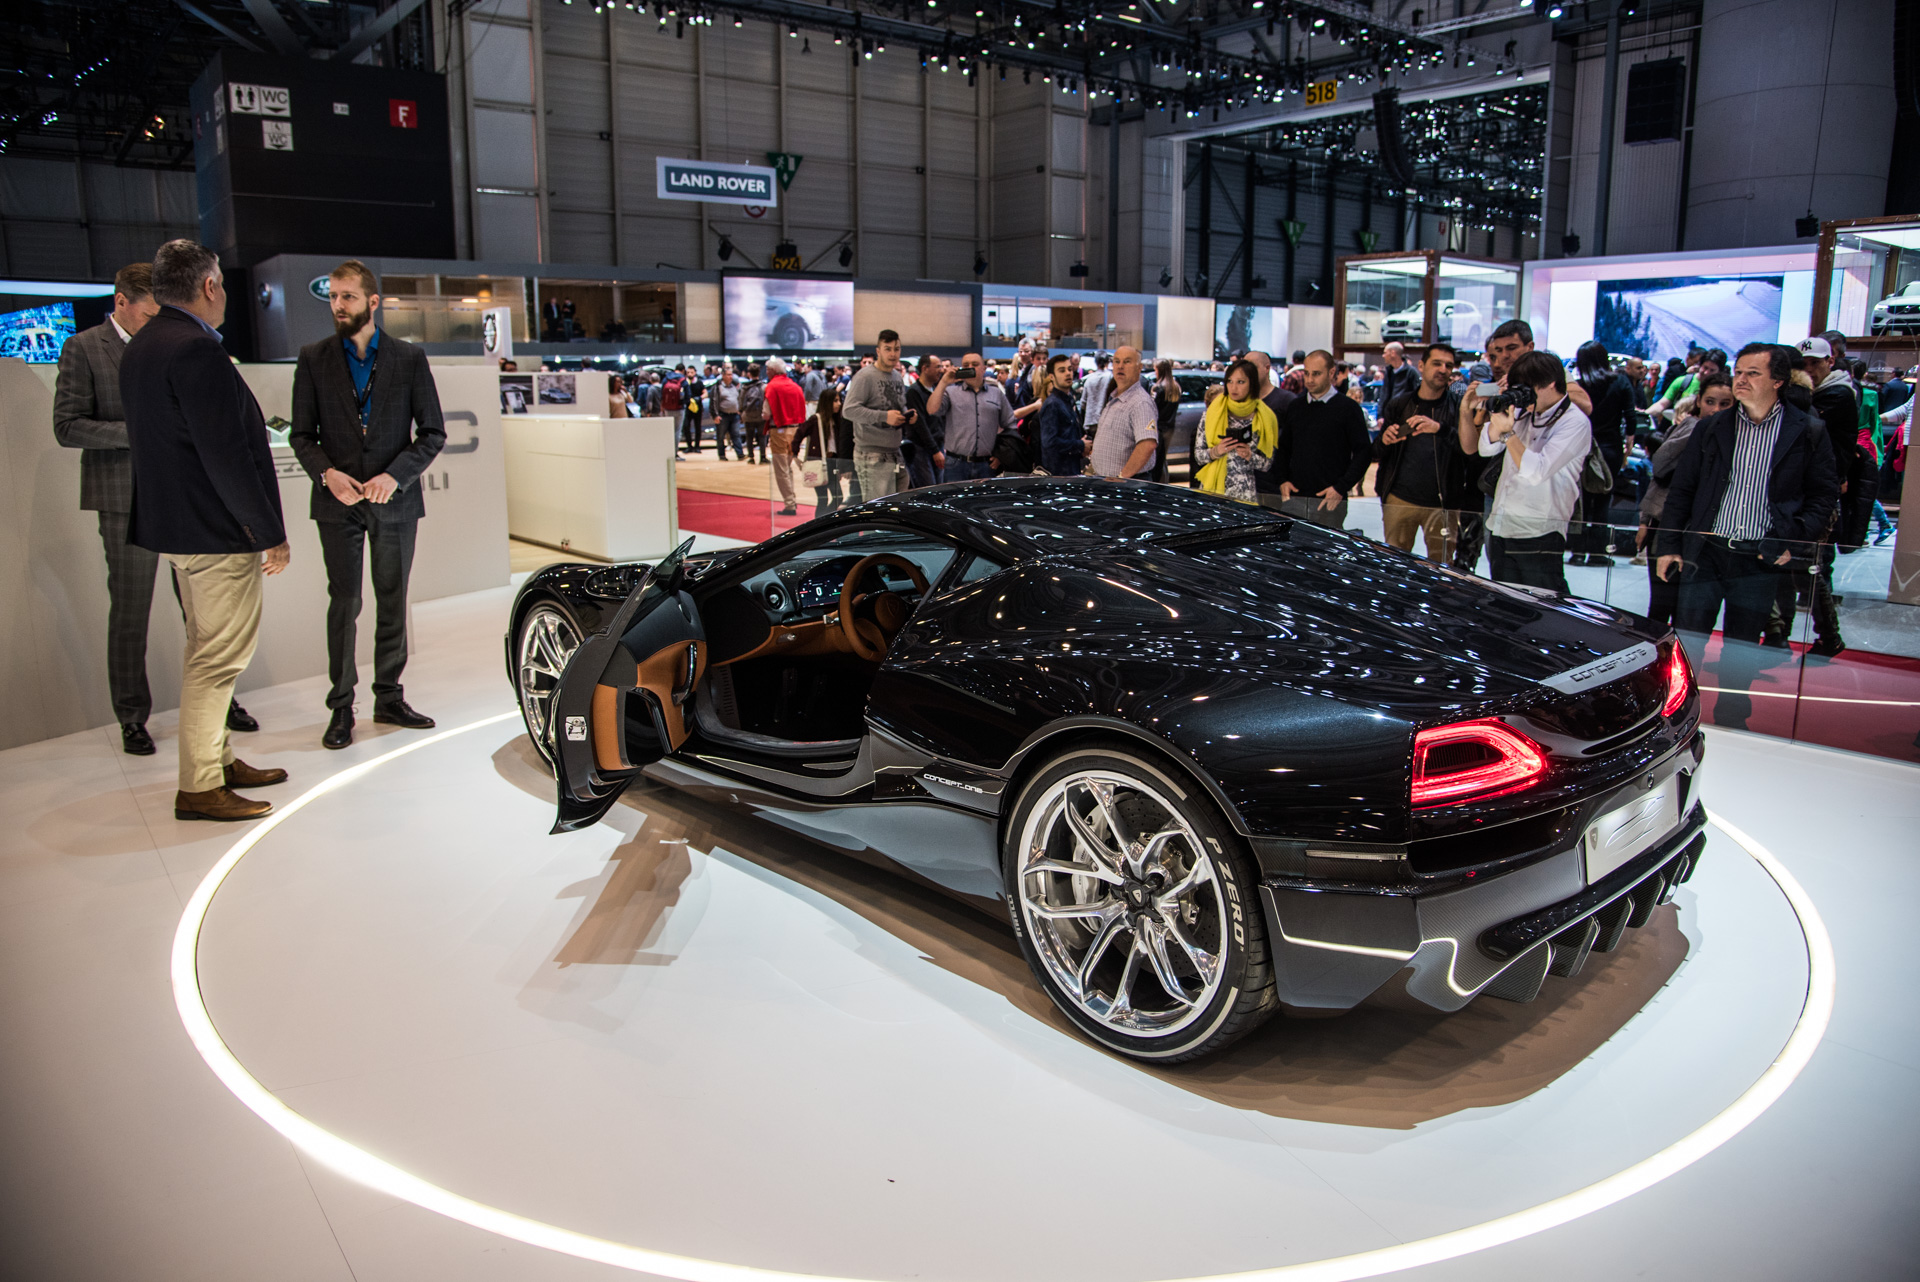 geneva-international-motor-show-igor-sinitsin-64